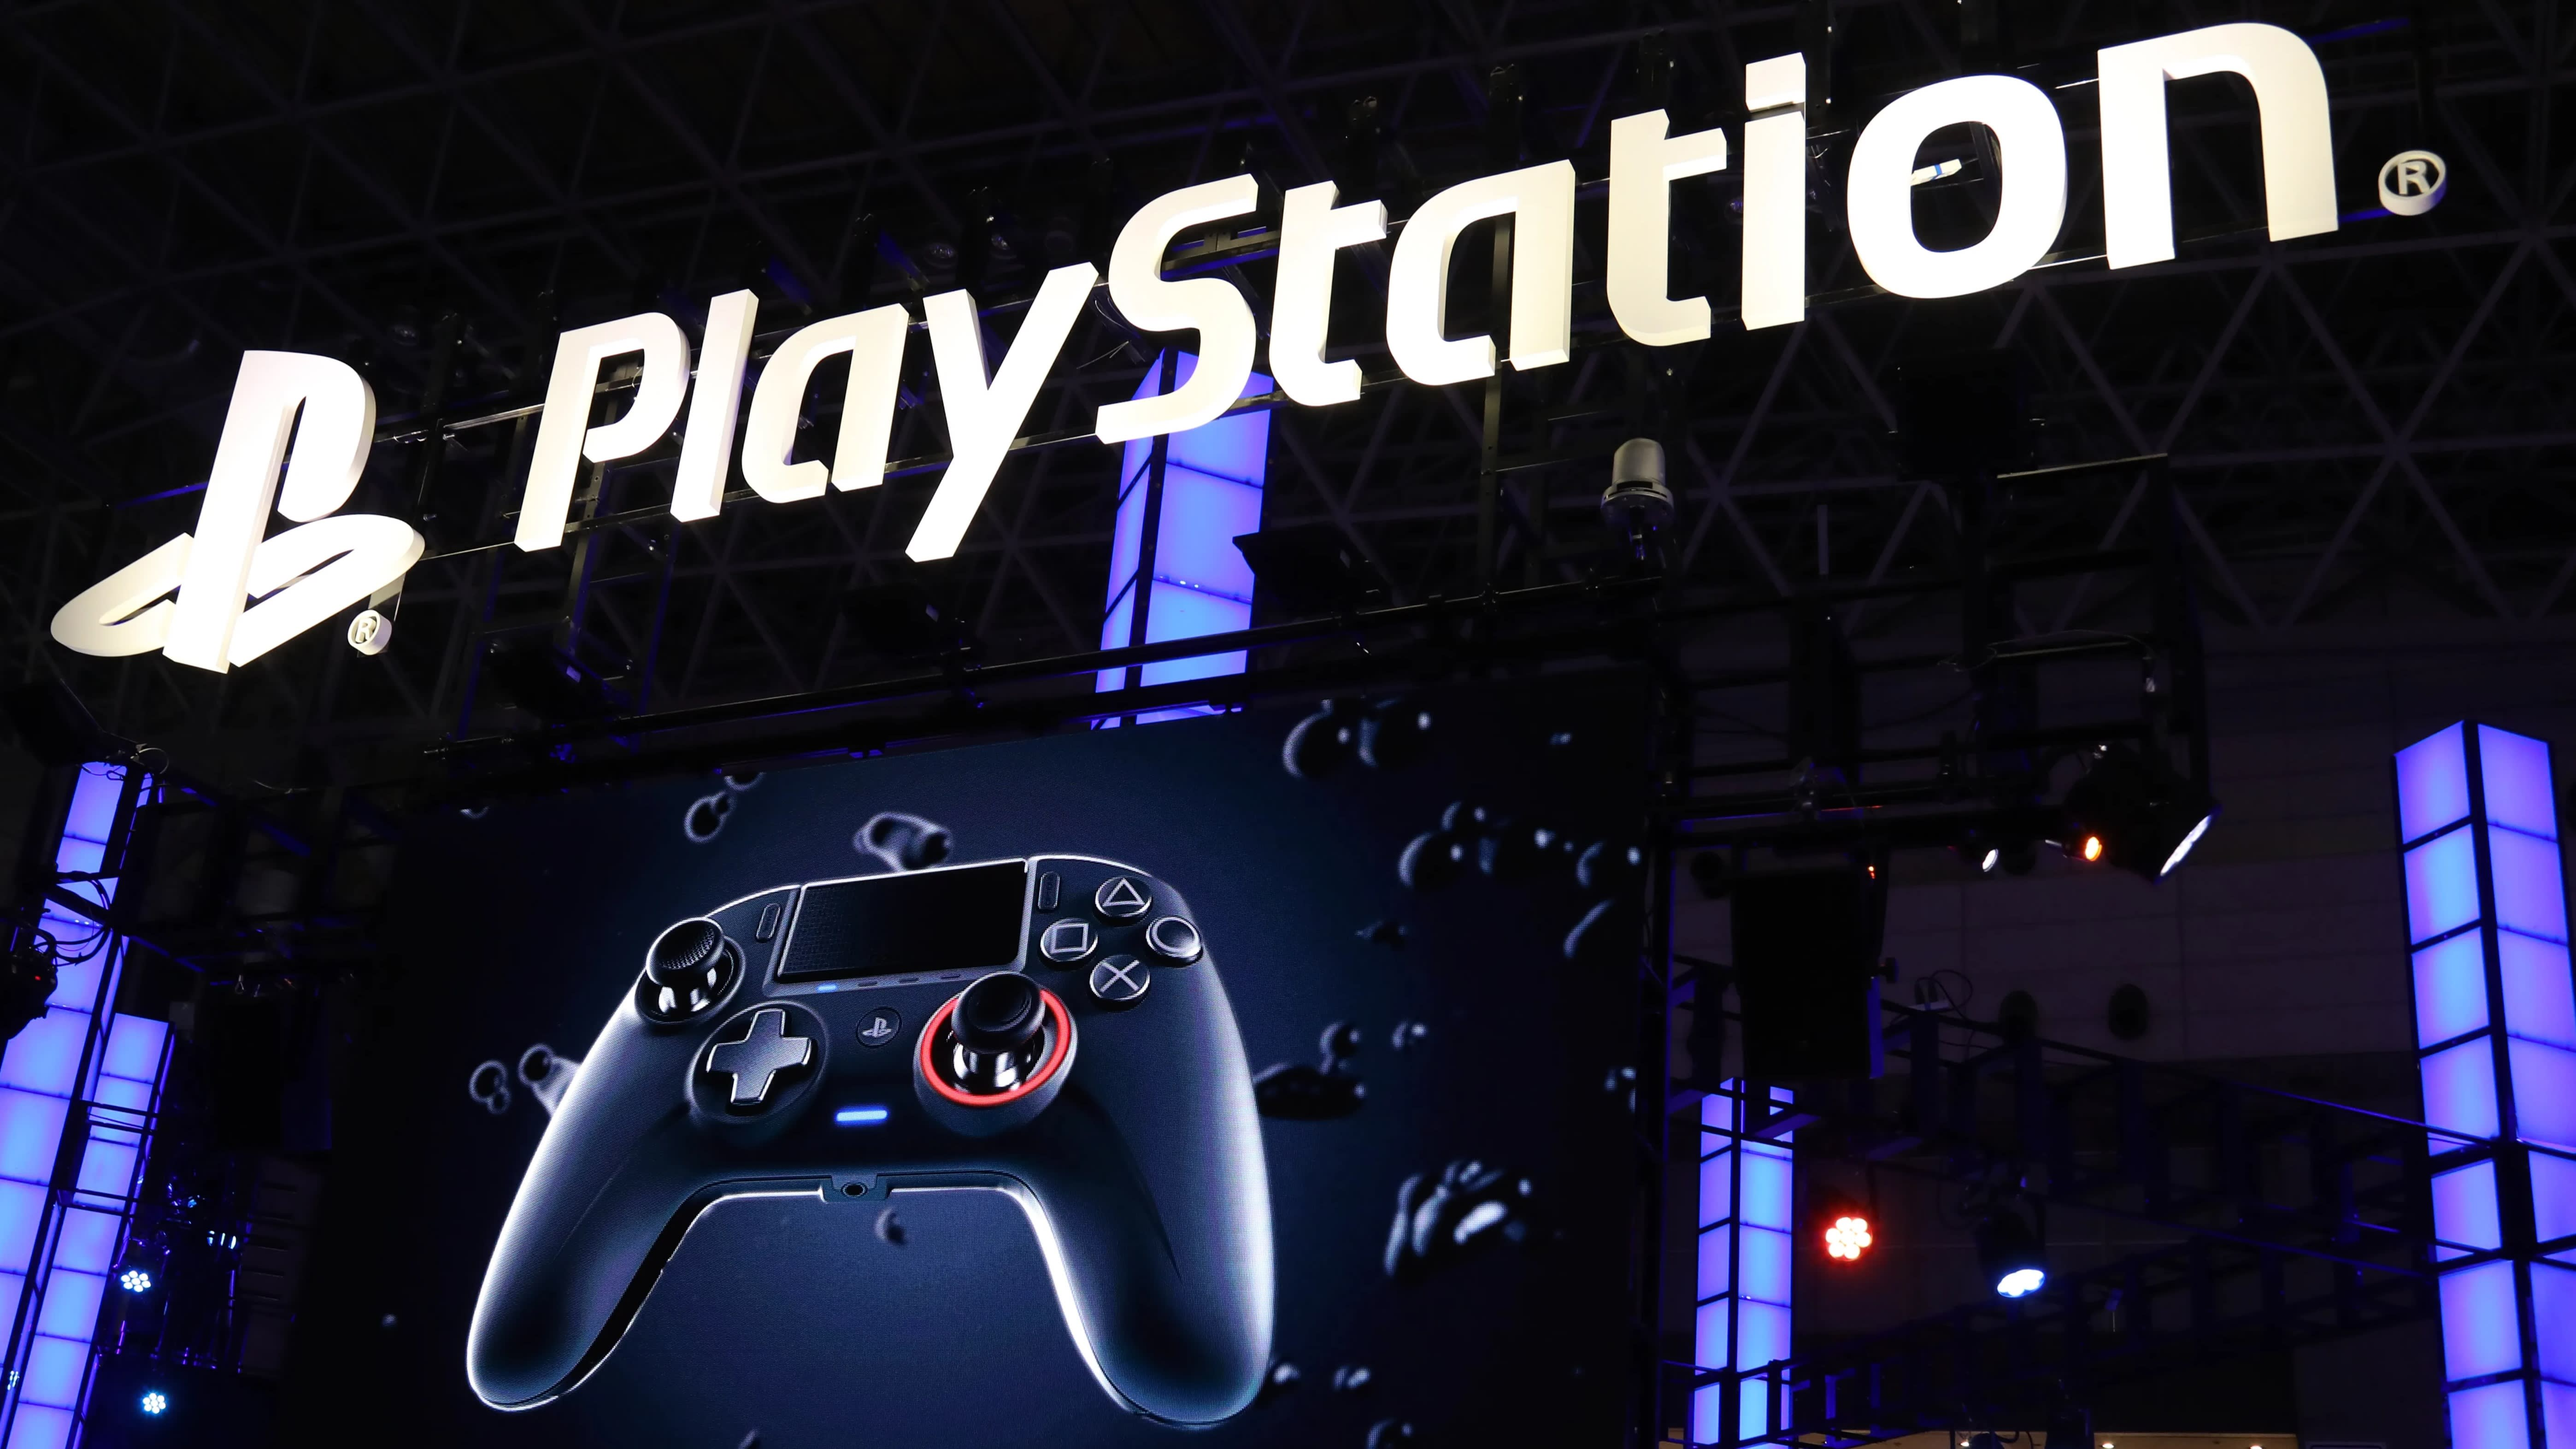 Playstation Year In Review 2020.Sony Cuts Revenue Forecast Ahead Of Playstation 5 Debut